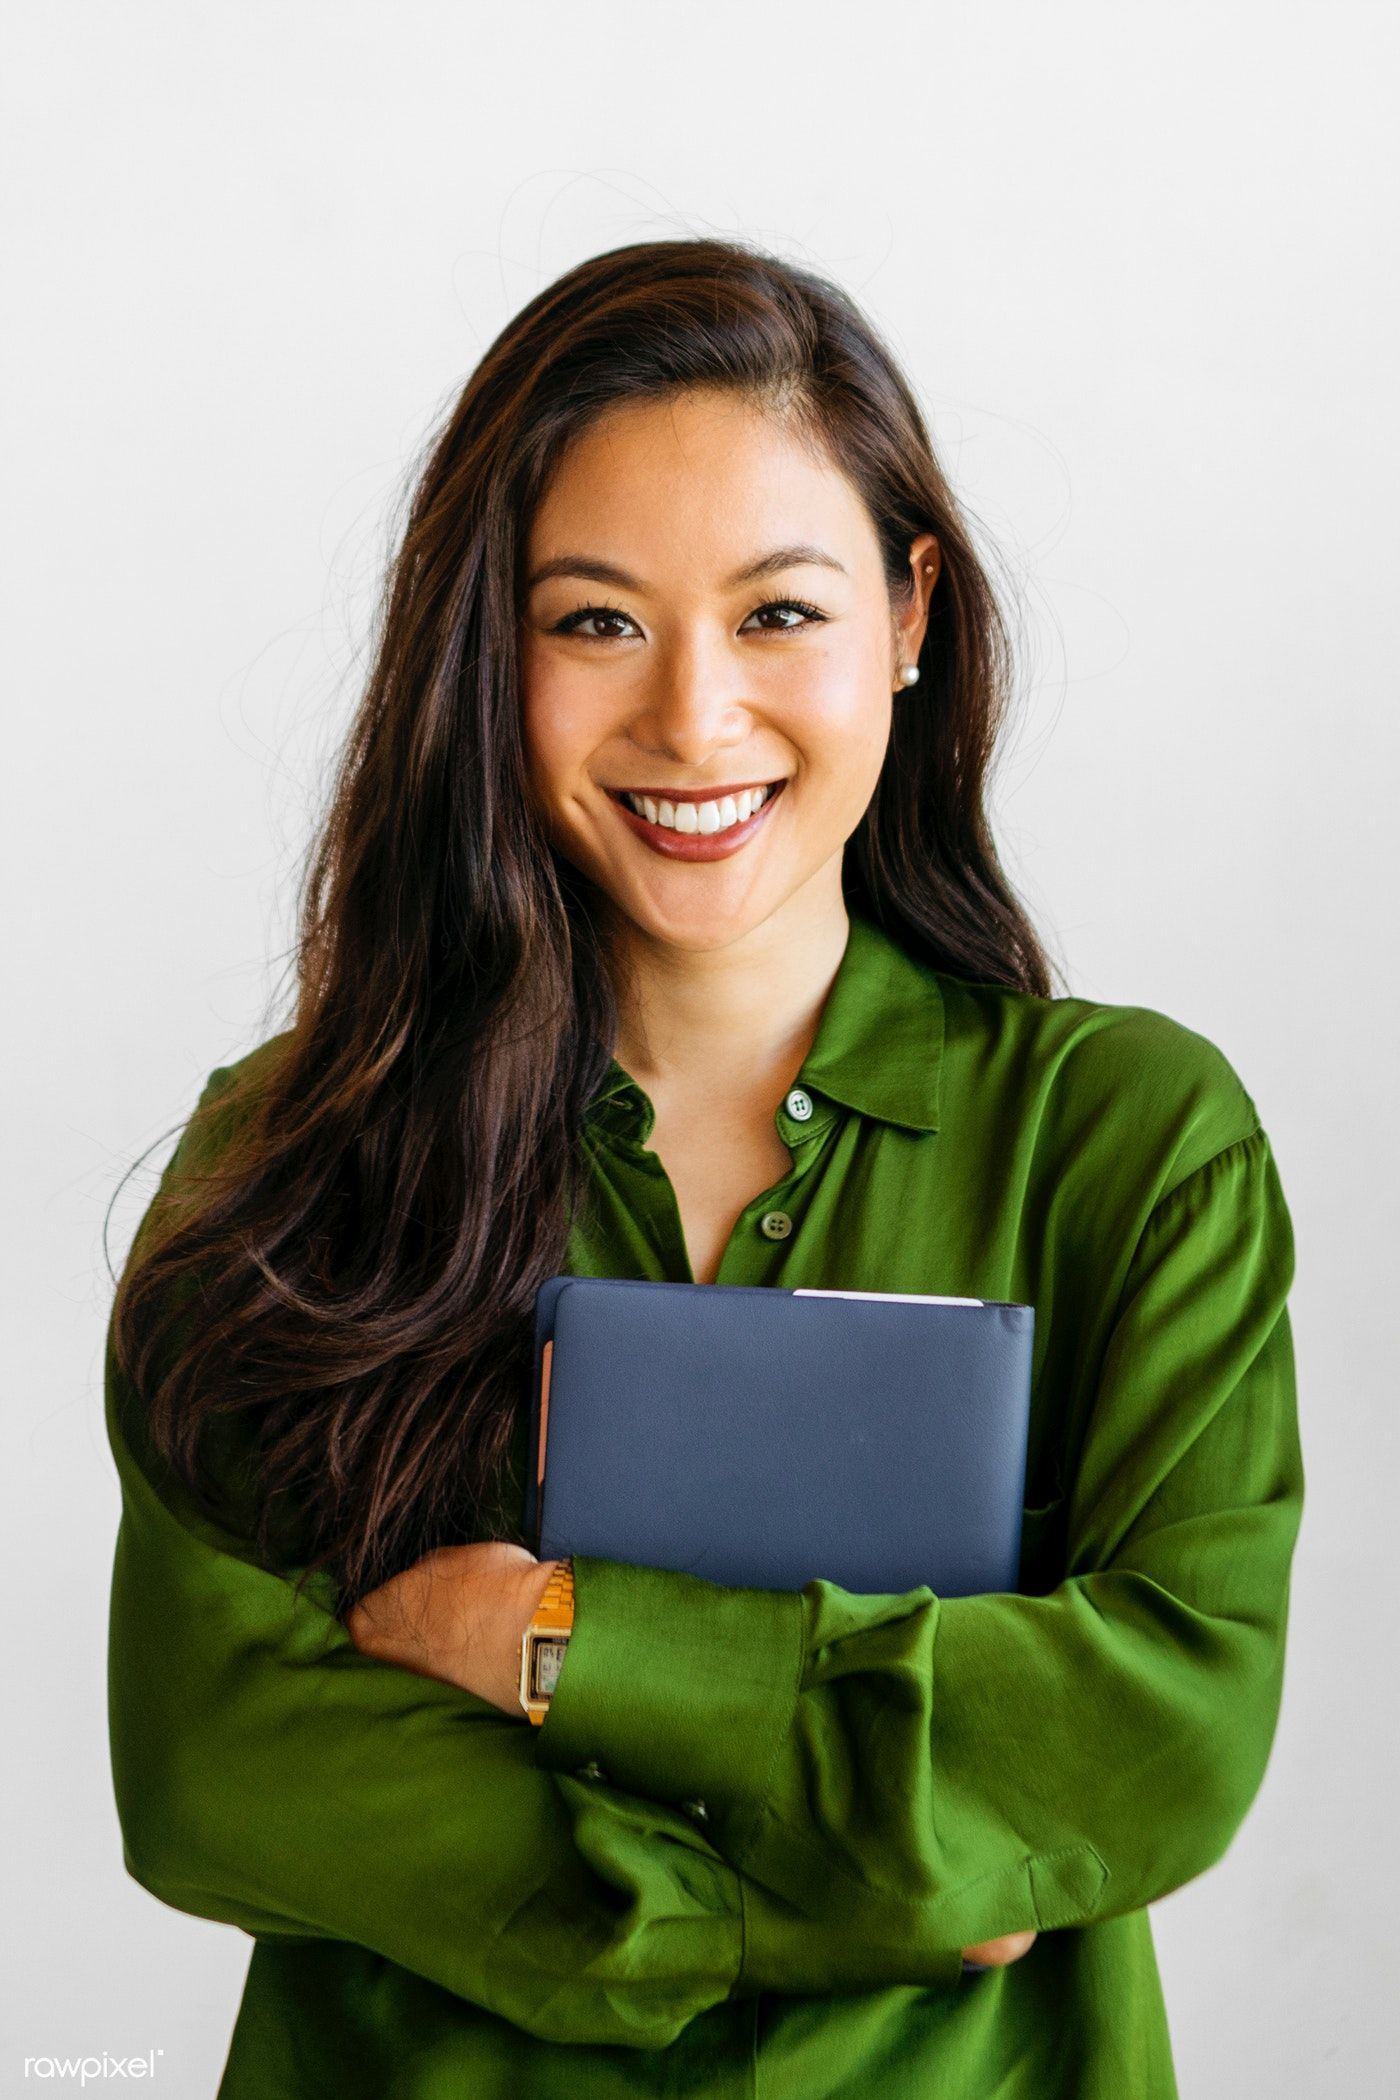 Download Premium Image Of Cheerful Woman In Green Shirt Holding Blue Branding Photoshoot Inspiration Business Pictures Business Portrait